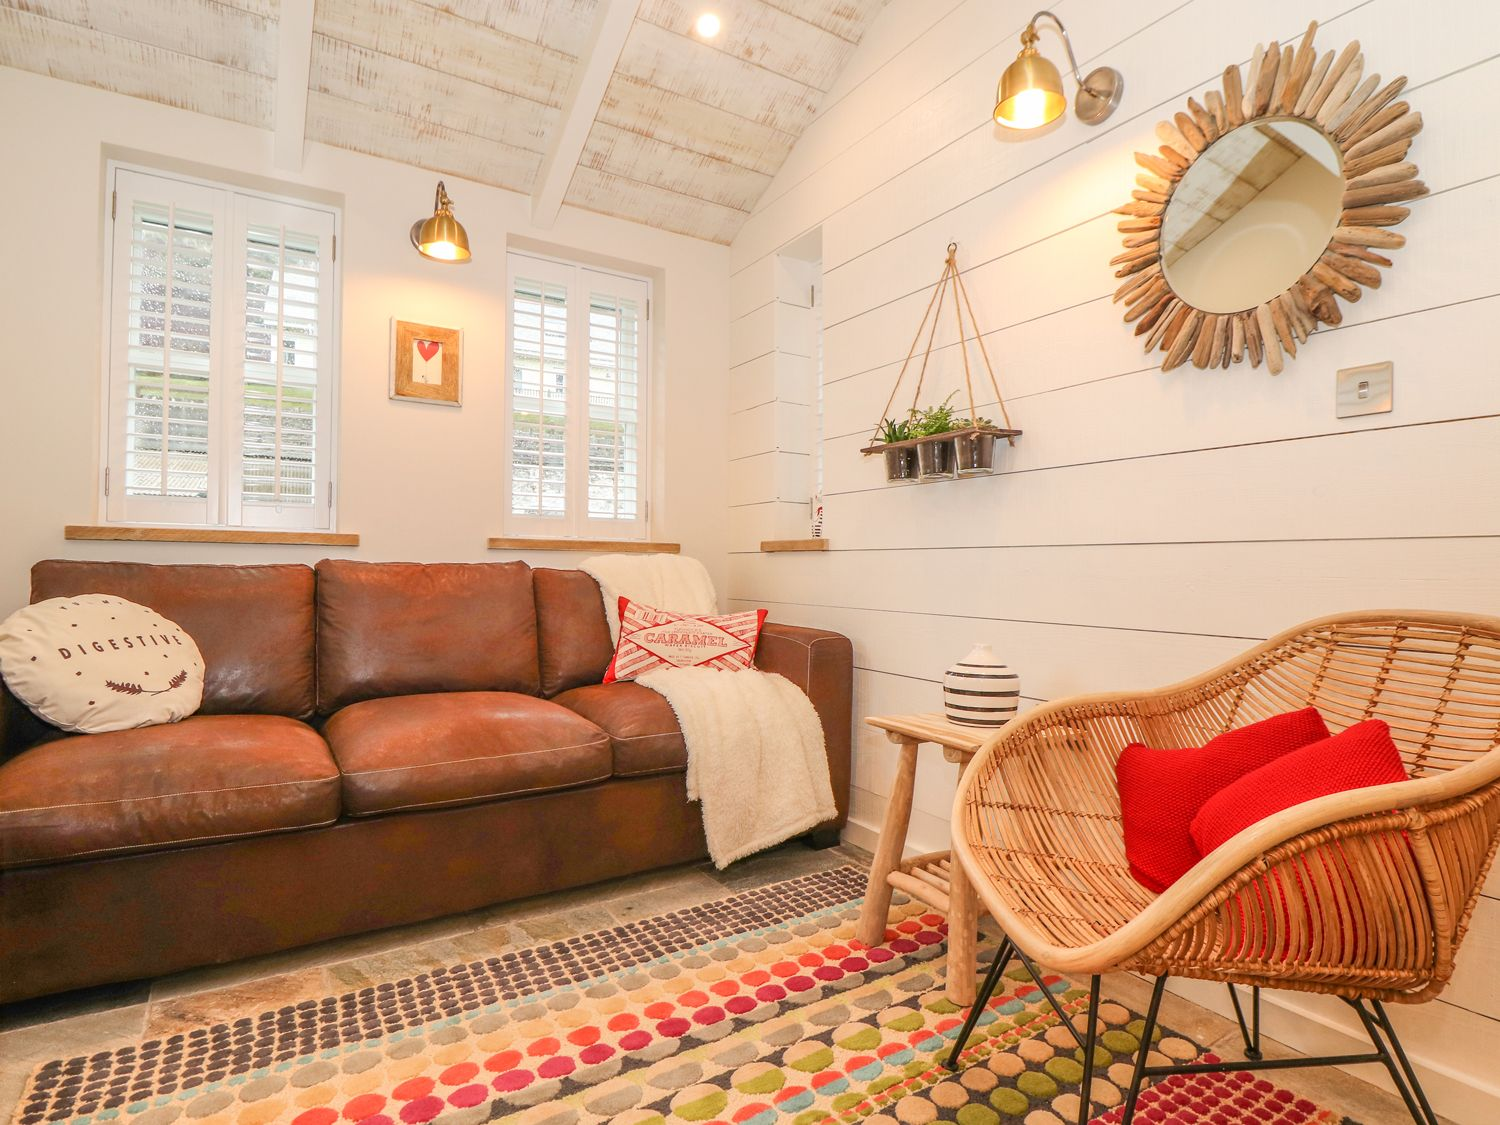 Beach Hut in Trebarwith Strand - sleeps 2 people